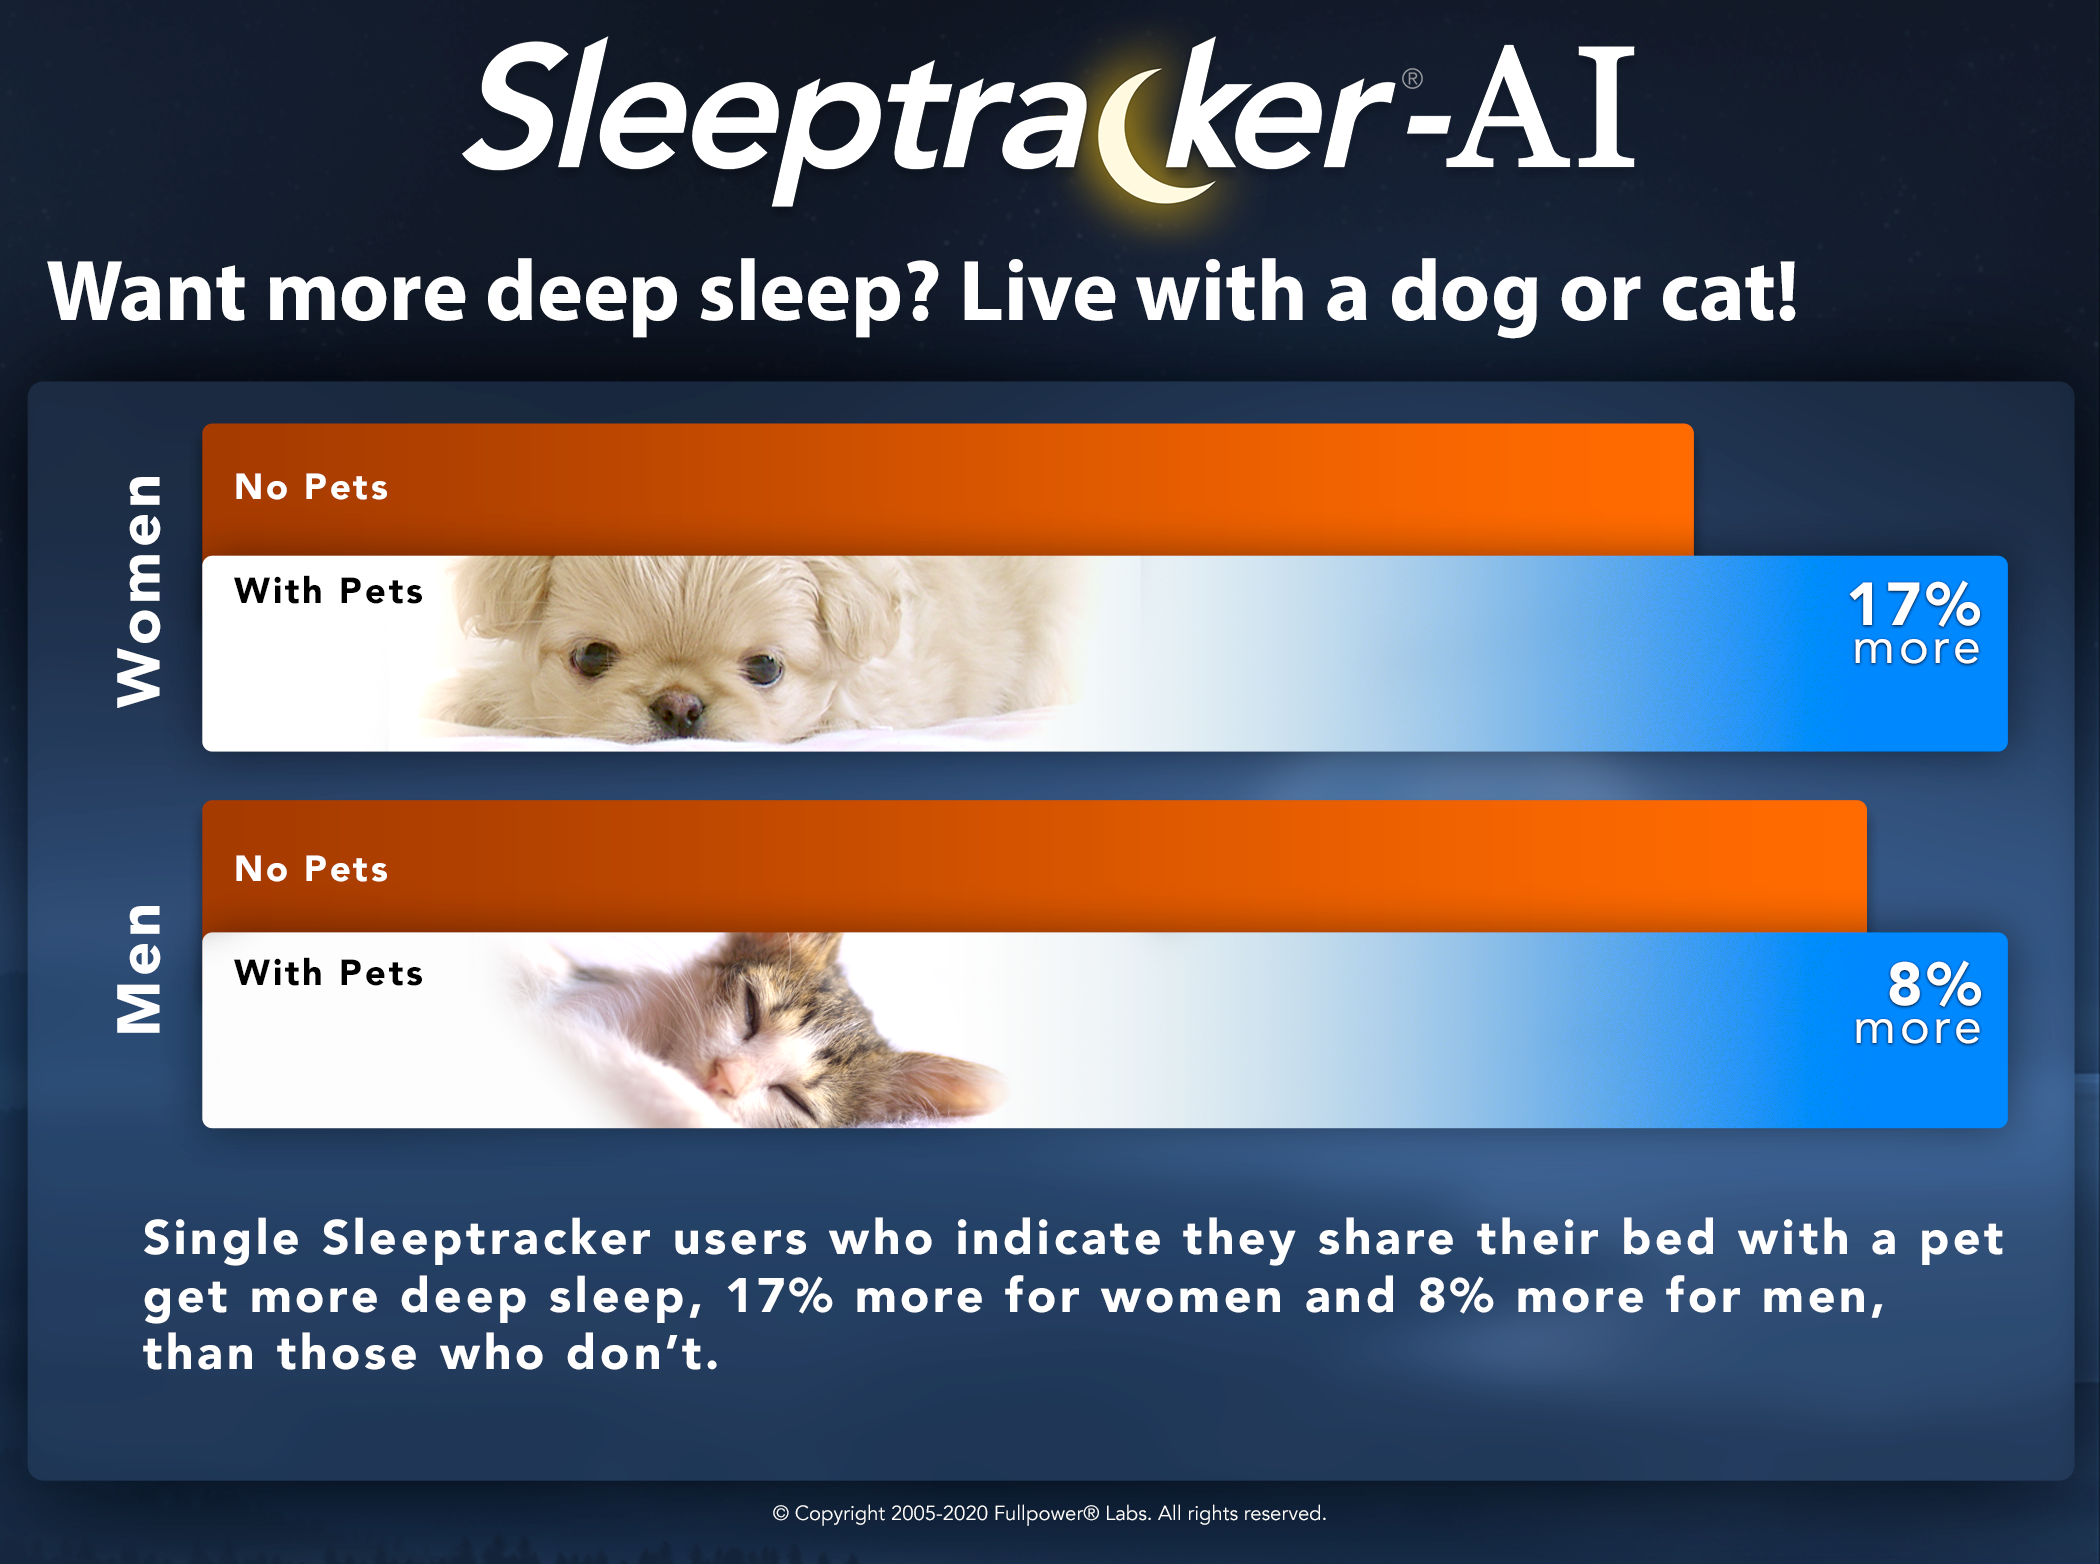 want-more-deep-sleep-live-with-a-cat-or-dog